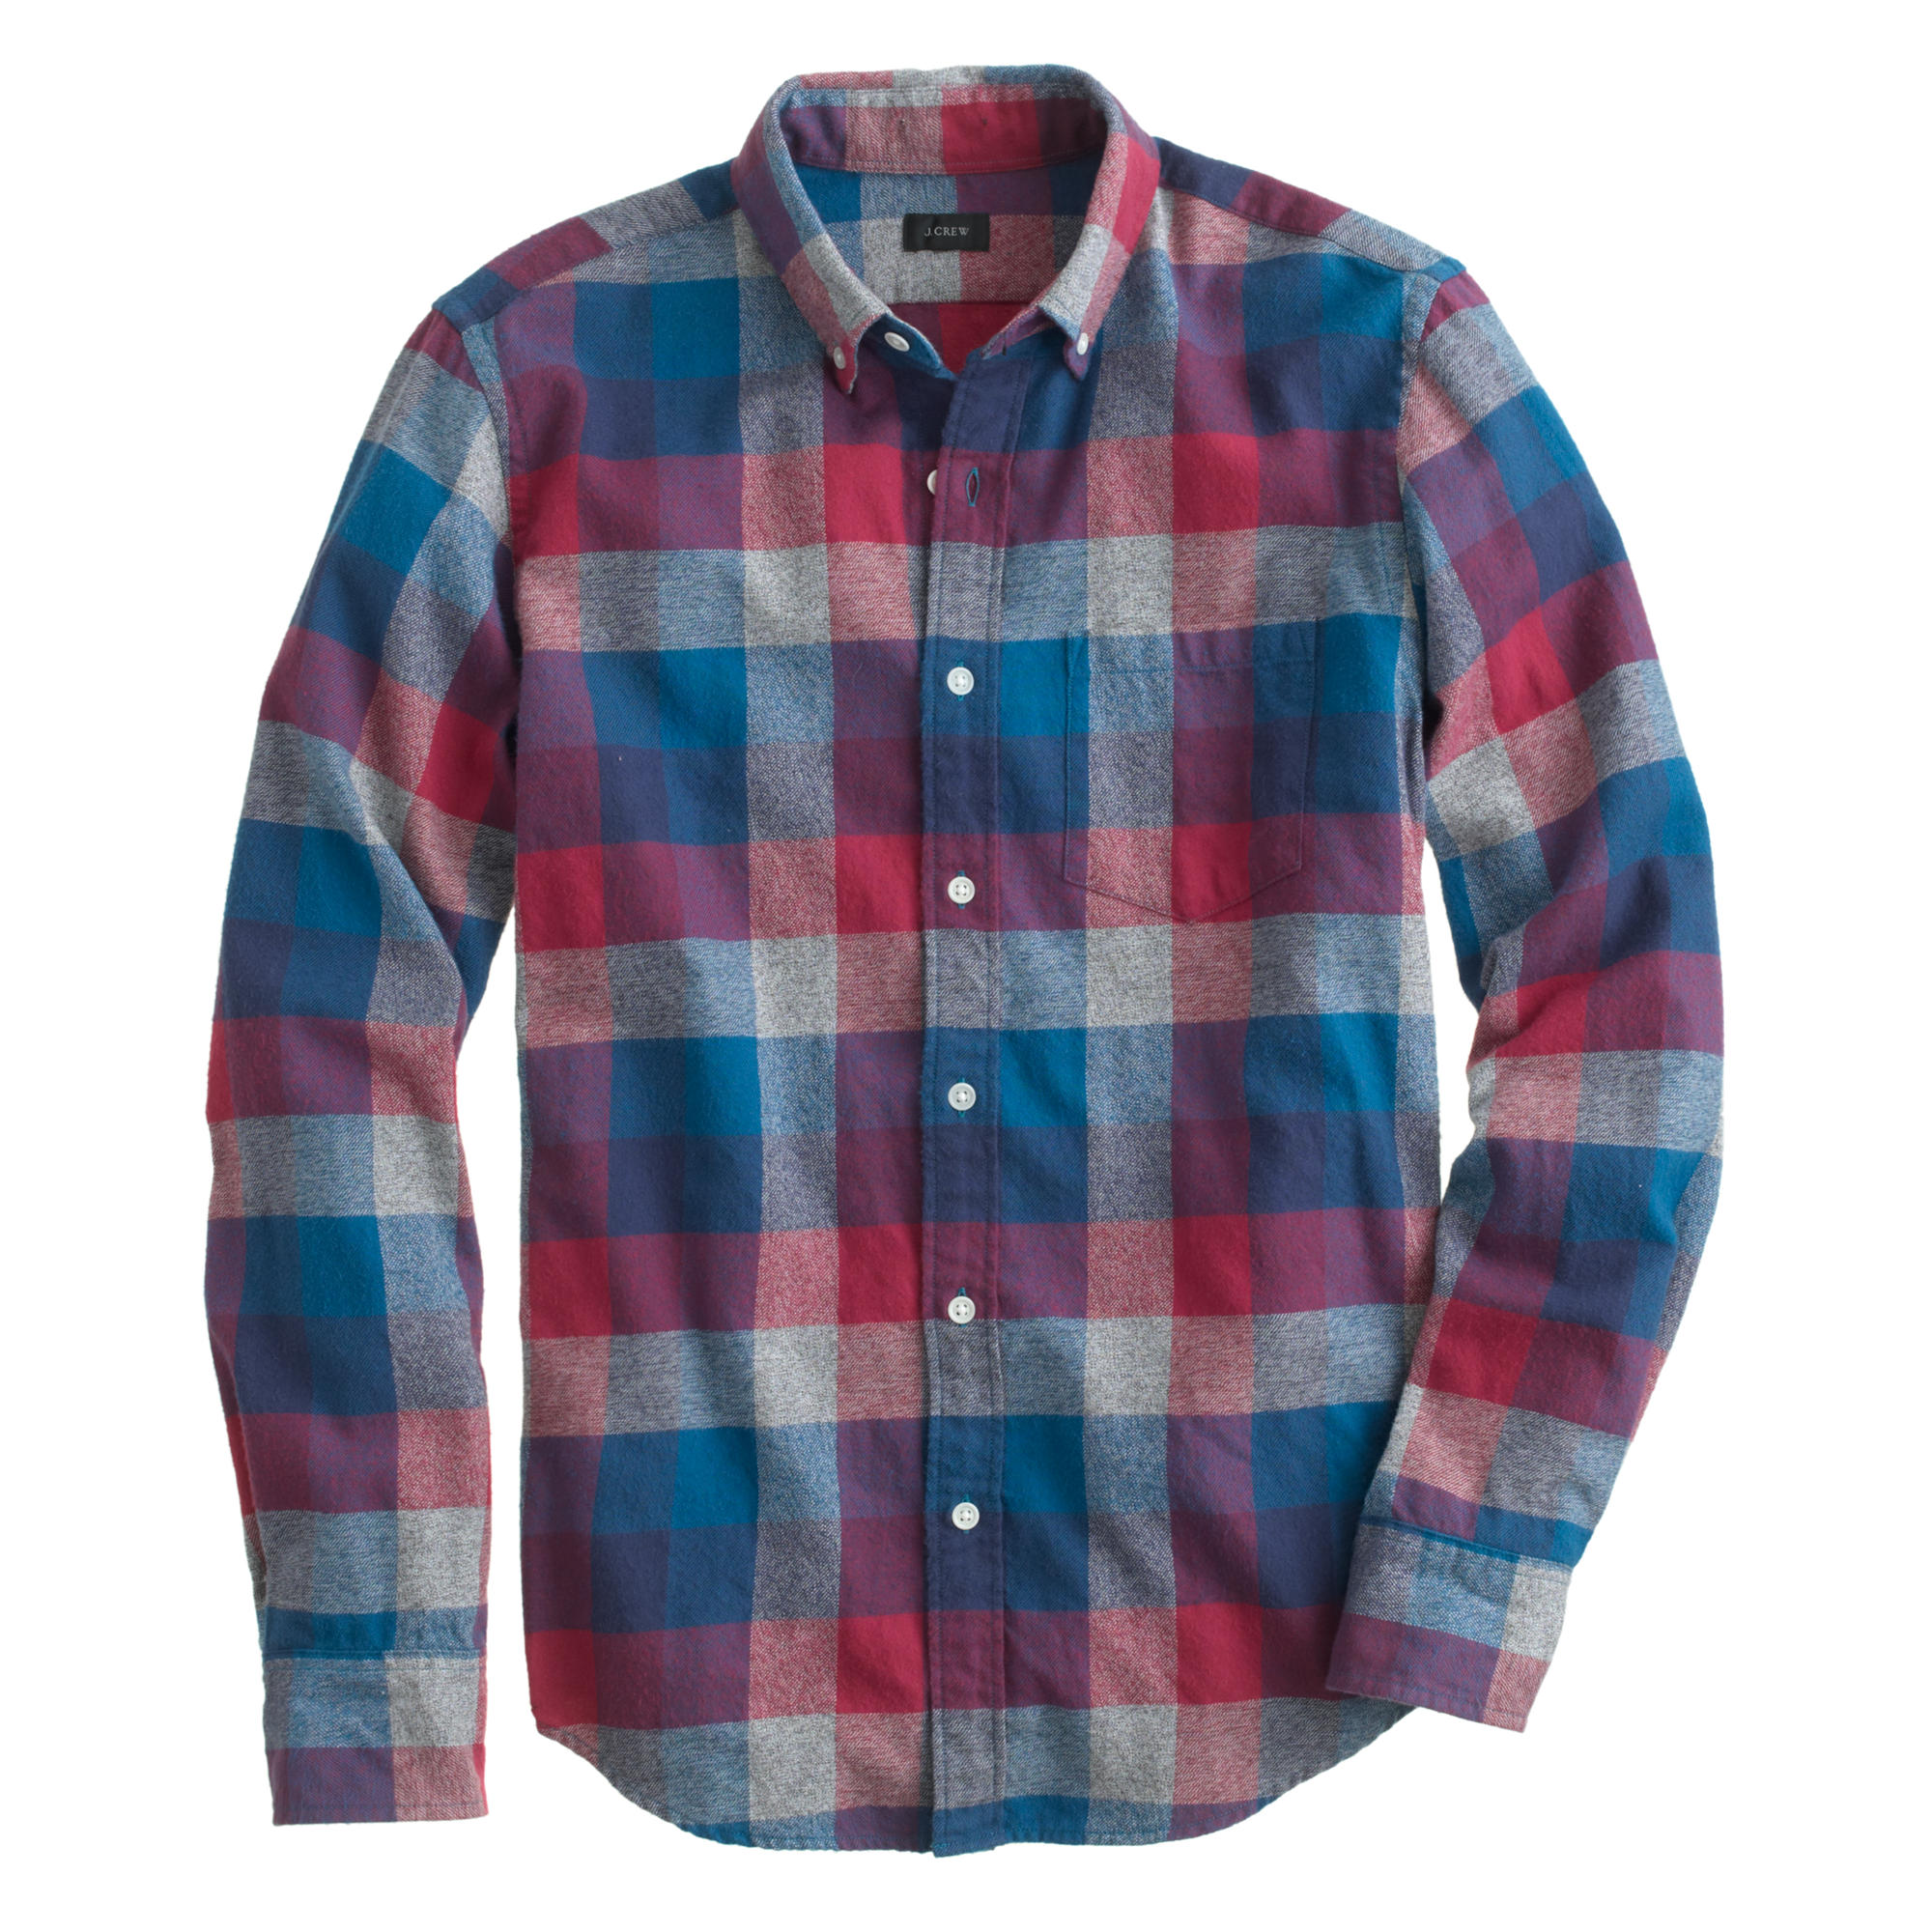 Brushed Twill Shirt In Heathered Plaid J Crew